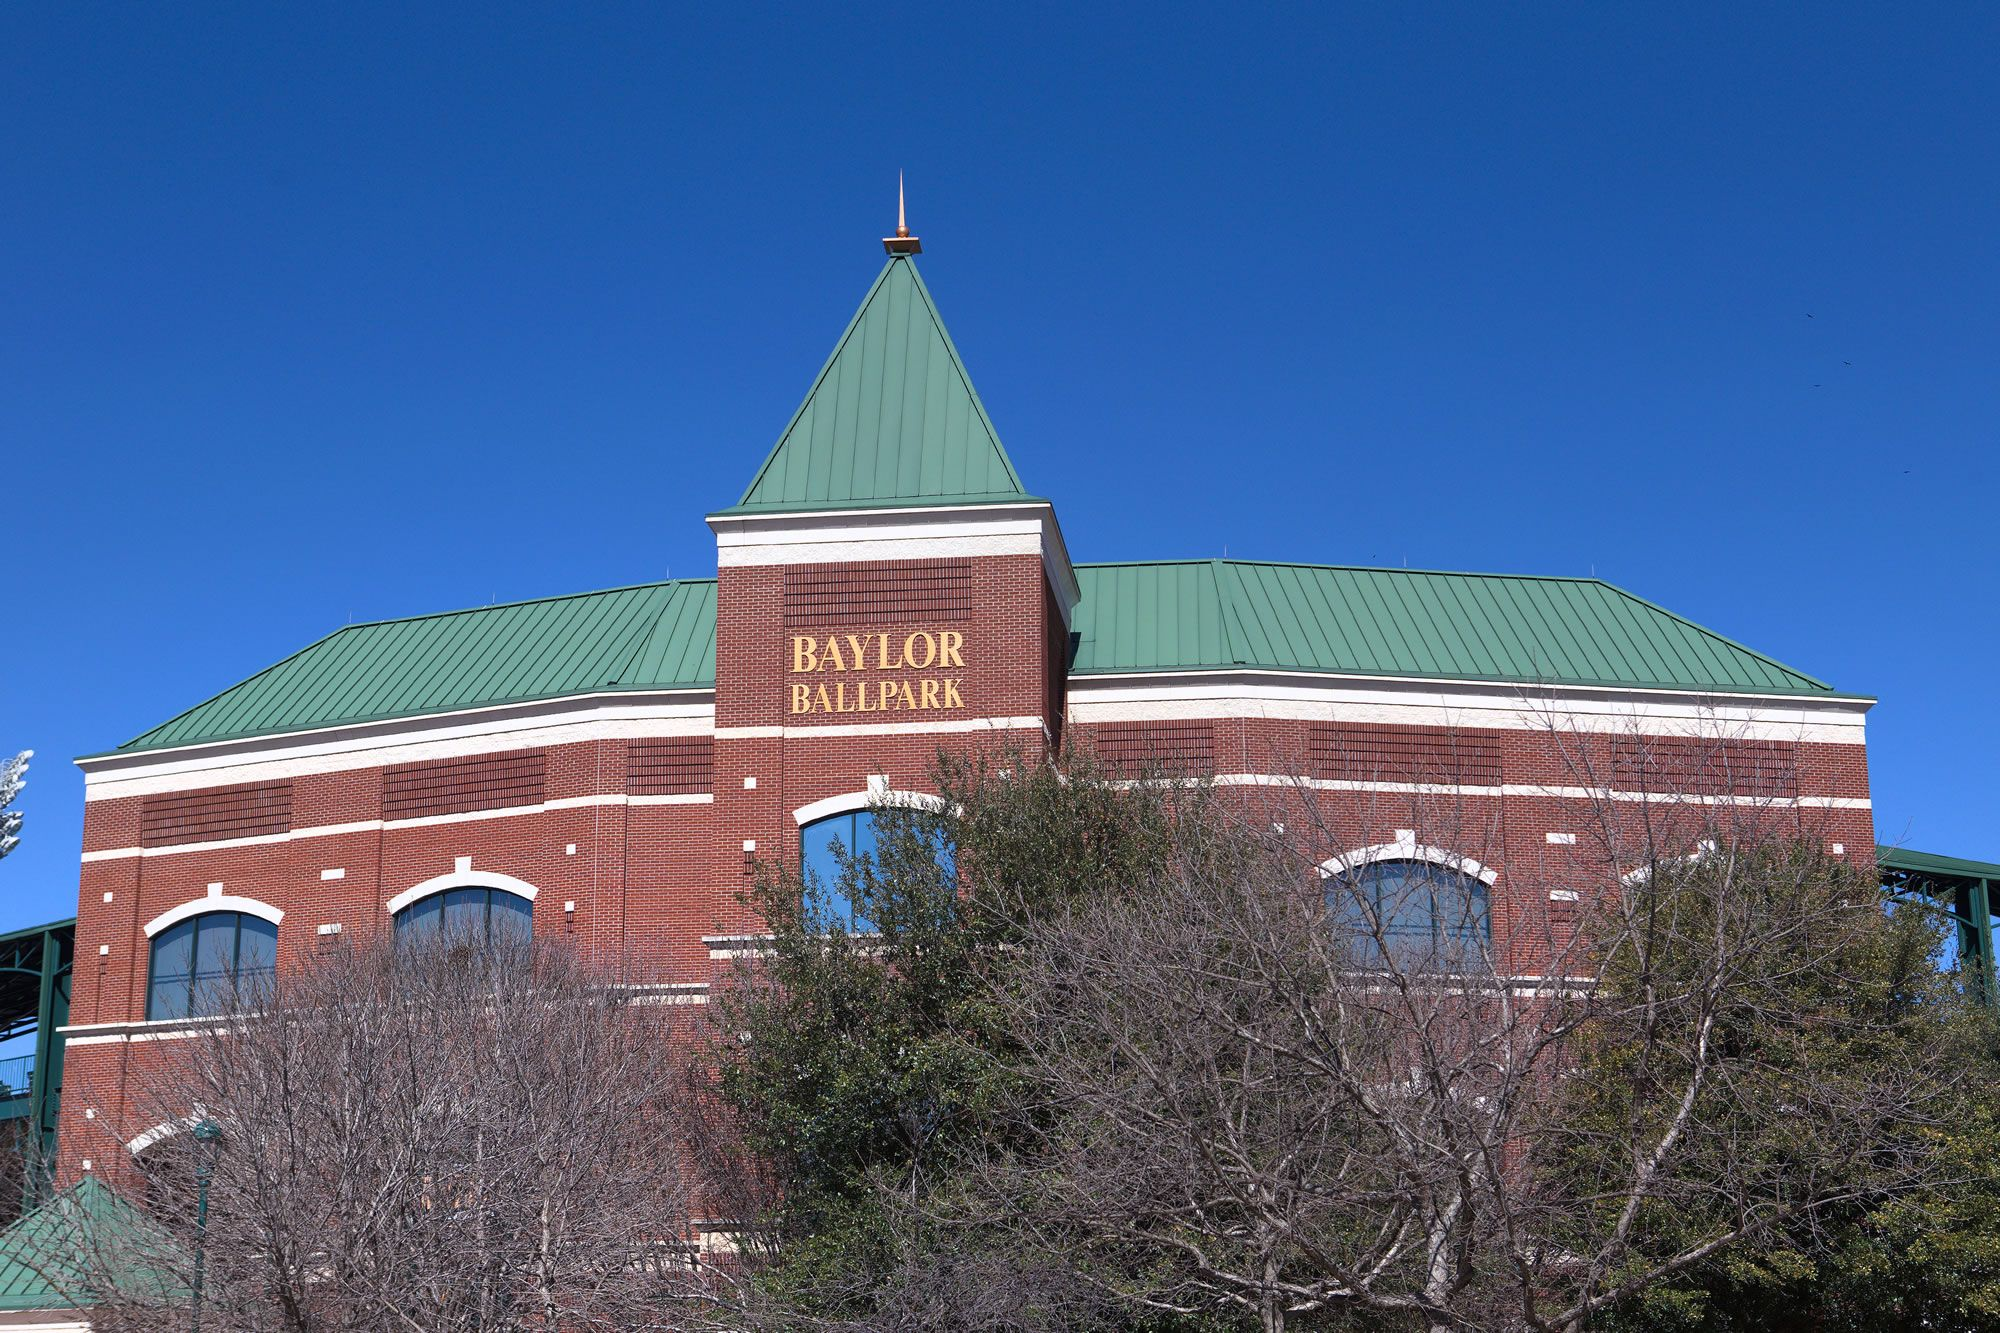 Guest Roofing Waco - Commercial Roofing Baylor Ballpark